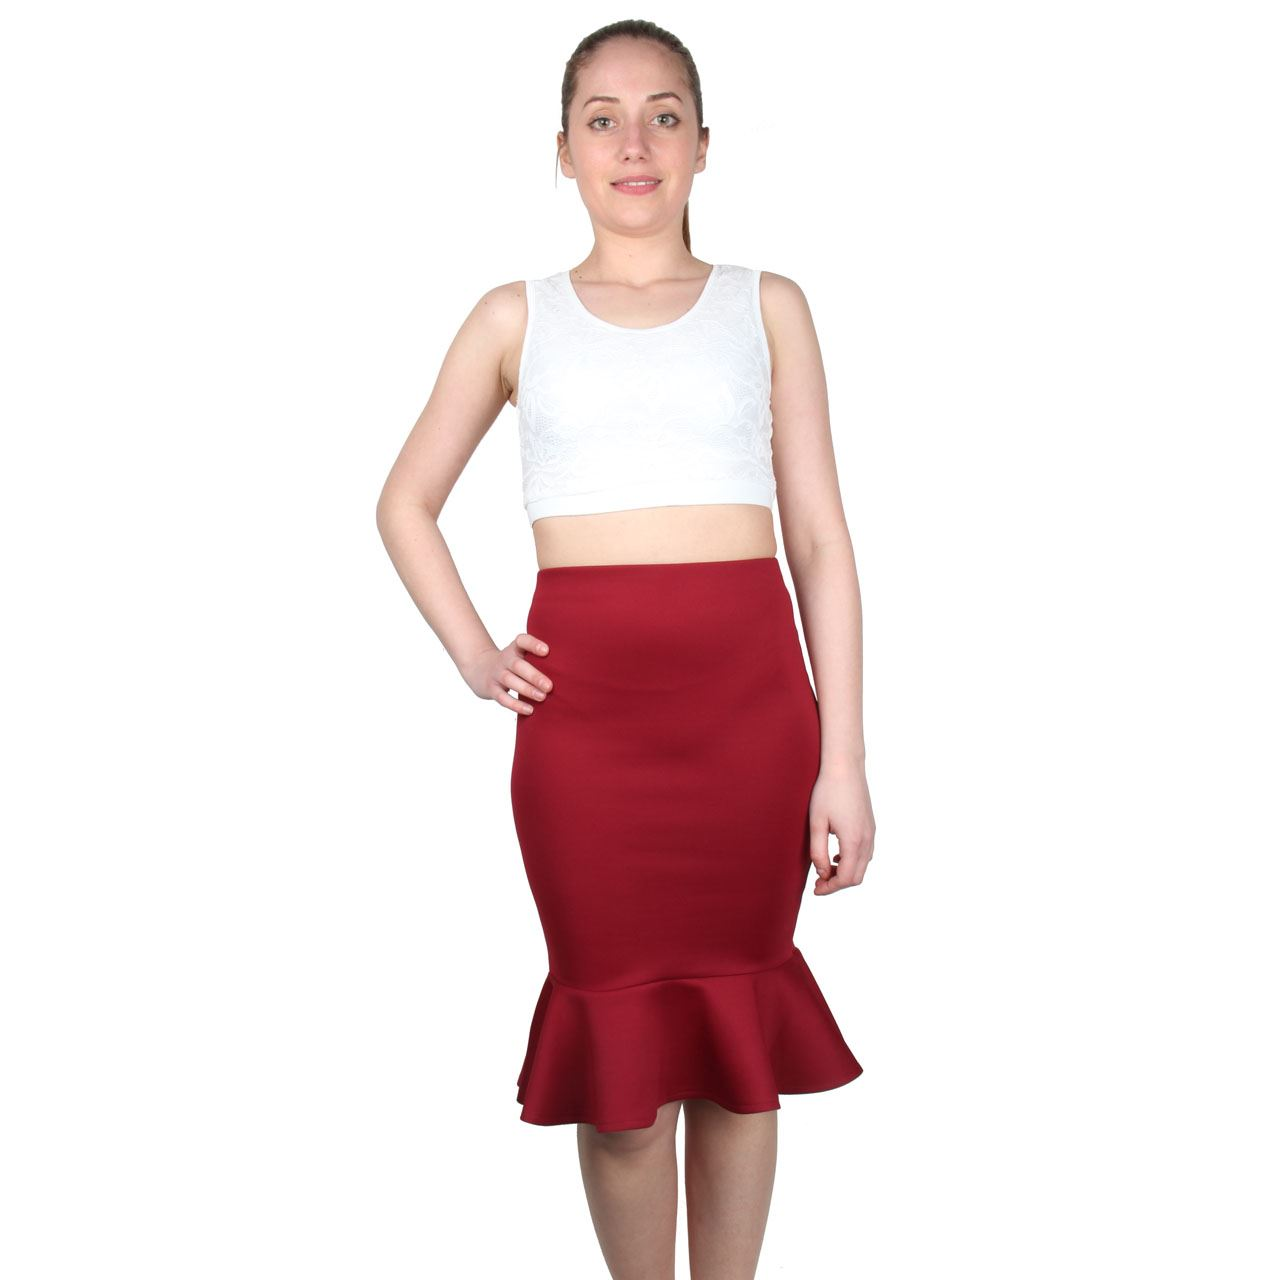 Shop multiformo.tk for Women's Pencil Skirts and see the entire selection of Long and Silk Pencil Skirts, Cotton Twill, Stripe and Denim Pencil Skirts.